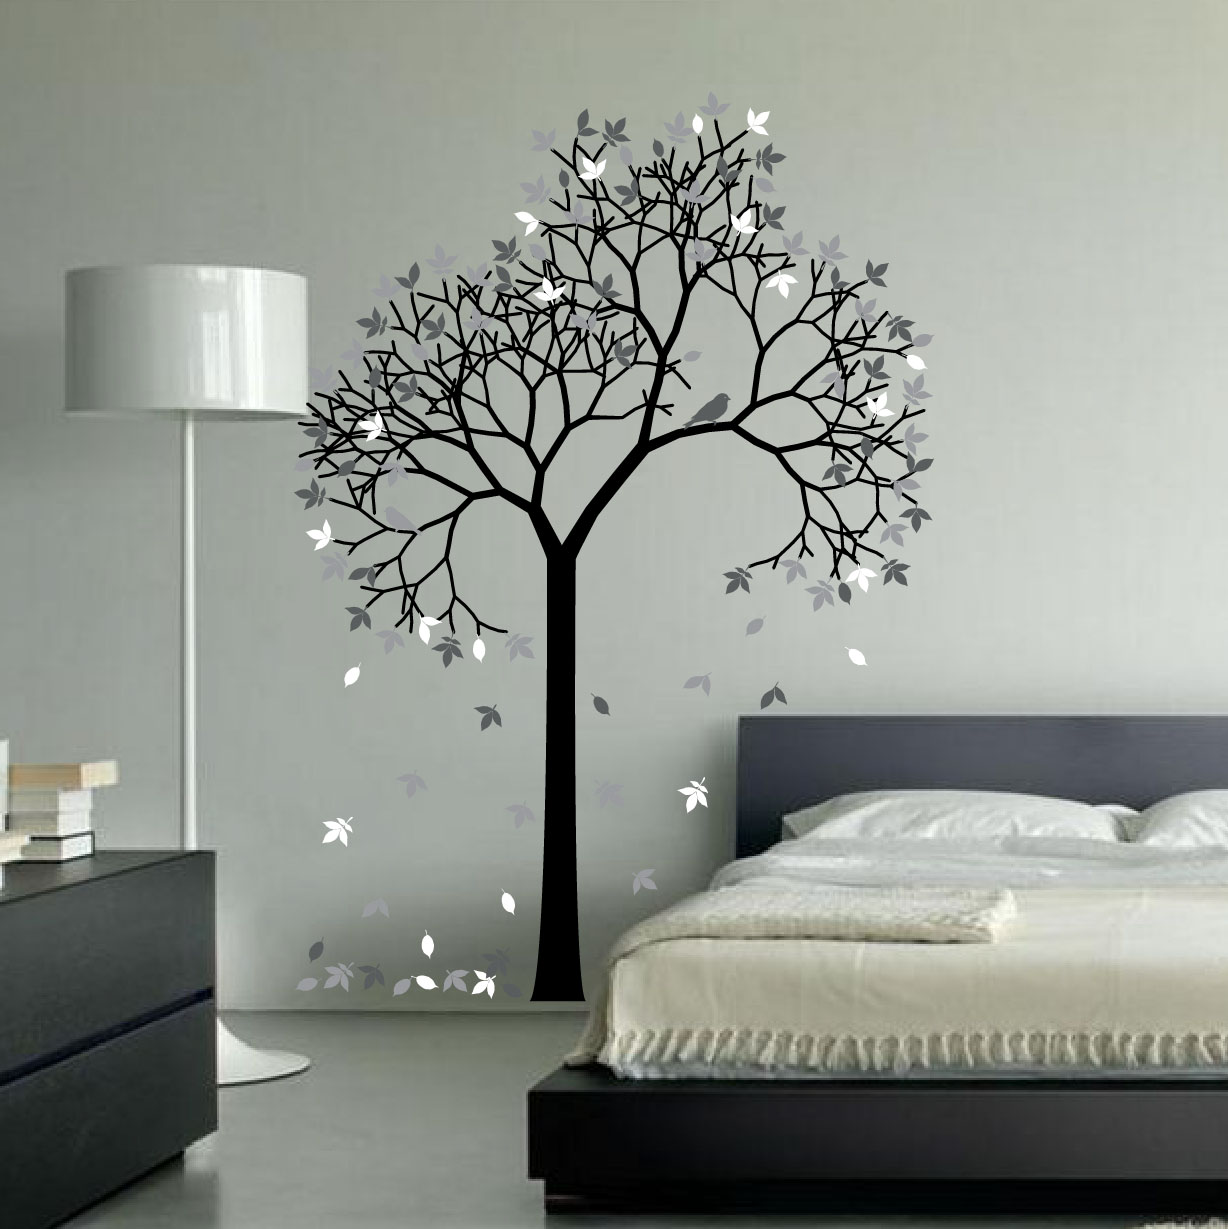 charming bedroom wall art stickers | Aspen Tree Wall Decal Sticker Vinyl Nursert Art Leaves and ...